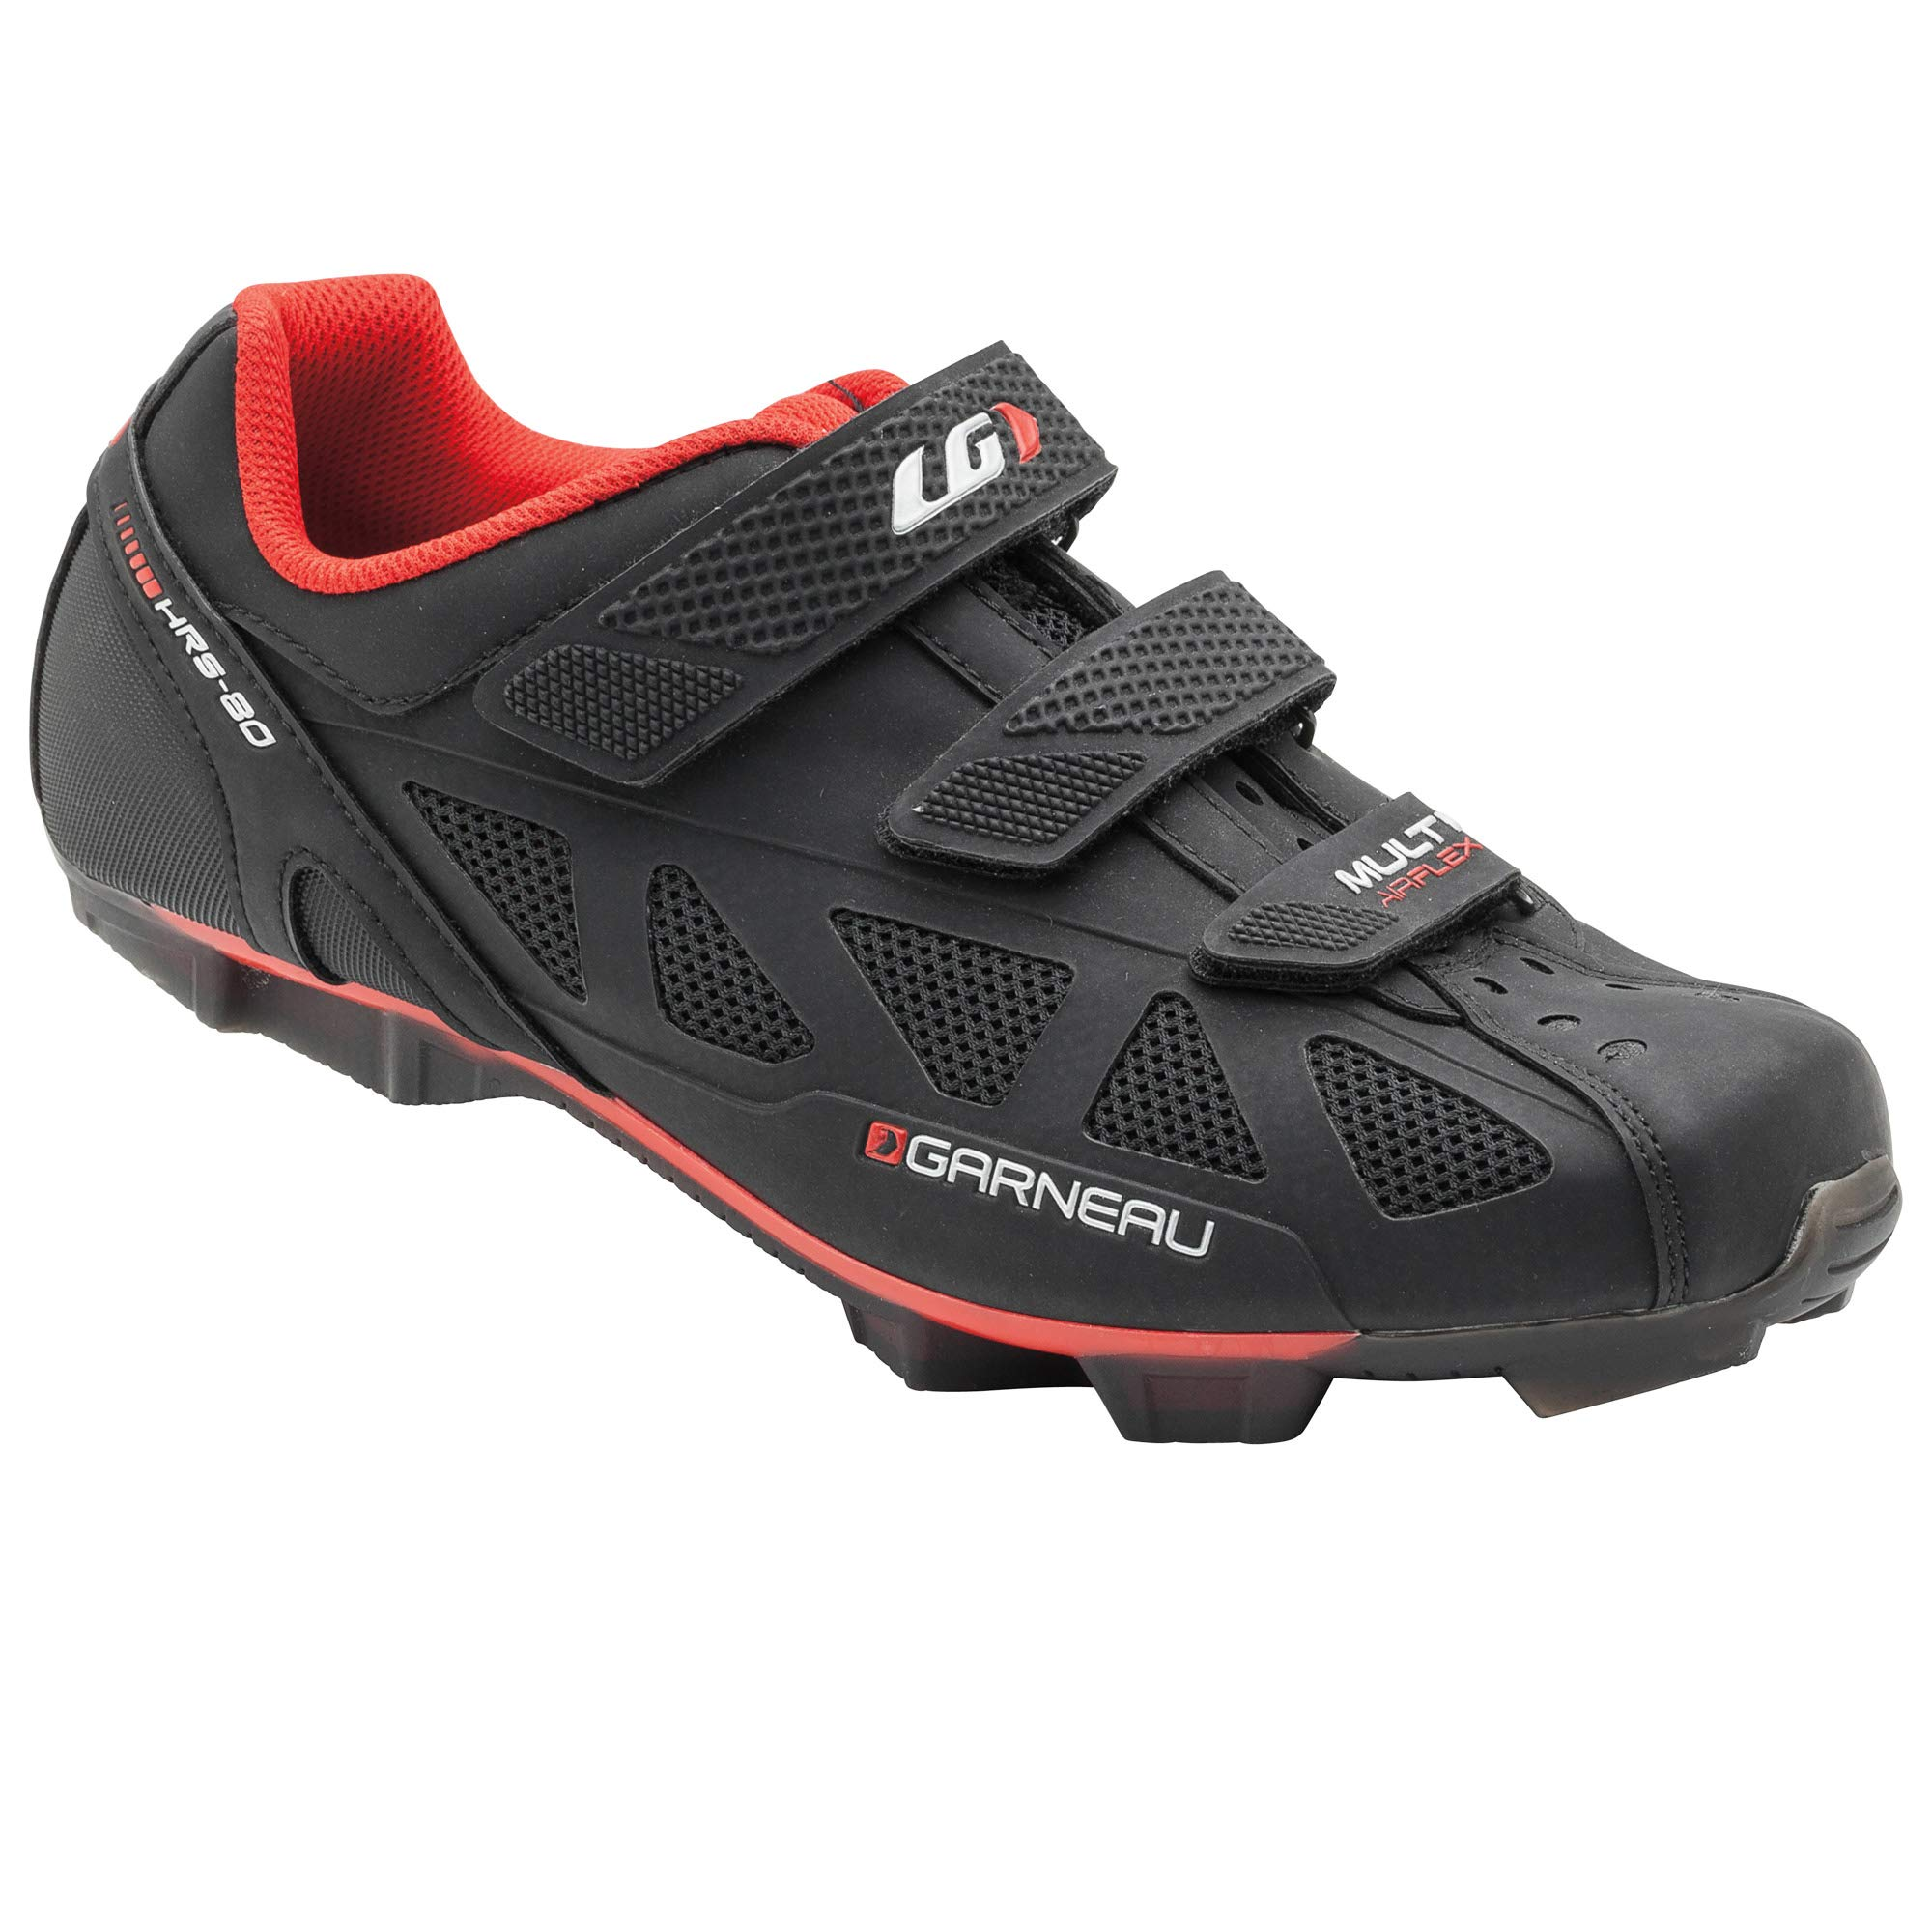 Louis Garneau Men's Multi Air Flex Bike Shoes for Commuting, MTB and Indoor Cycling, SPD Cleats Compatible with MTB Pedals, Ginger, US (10.75), EU (45) by Louis Garneau